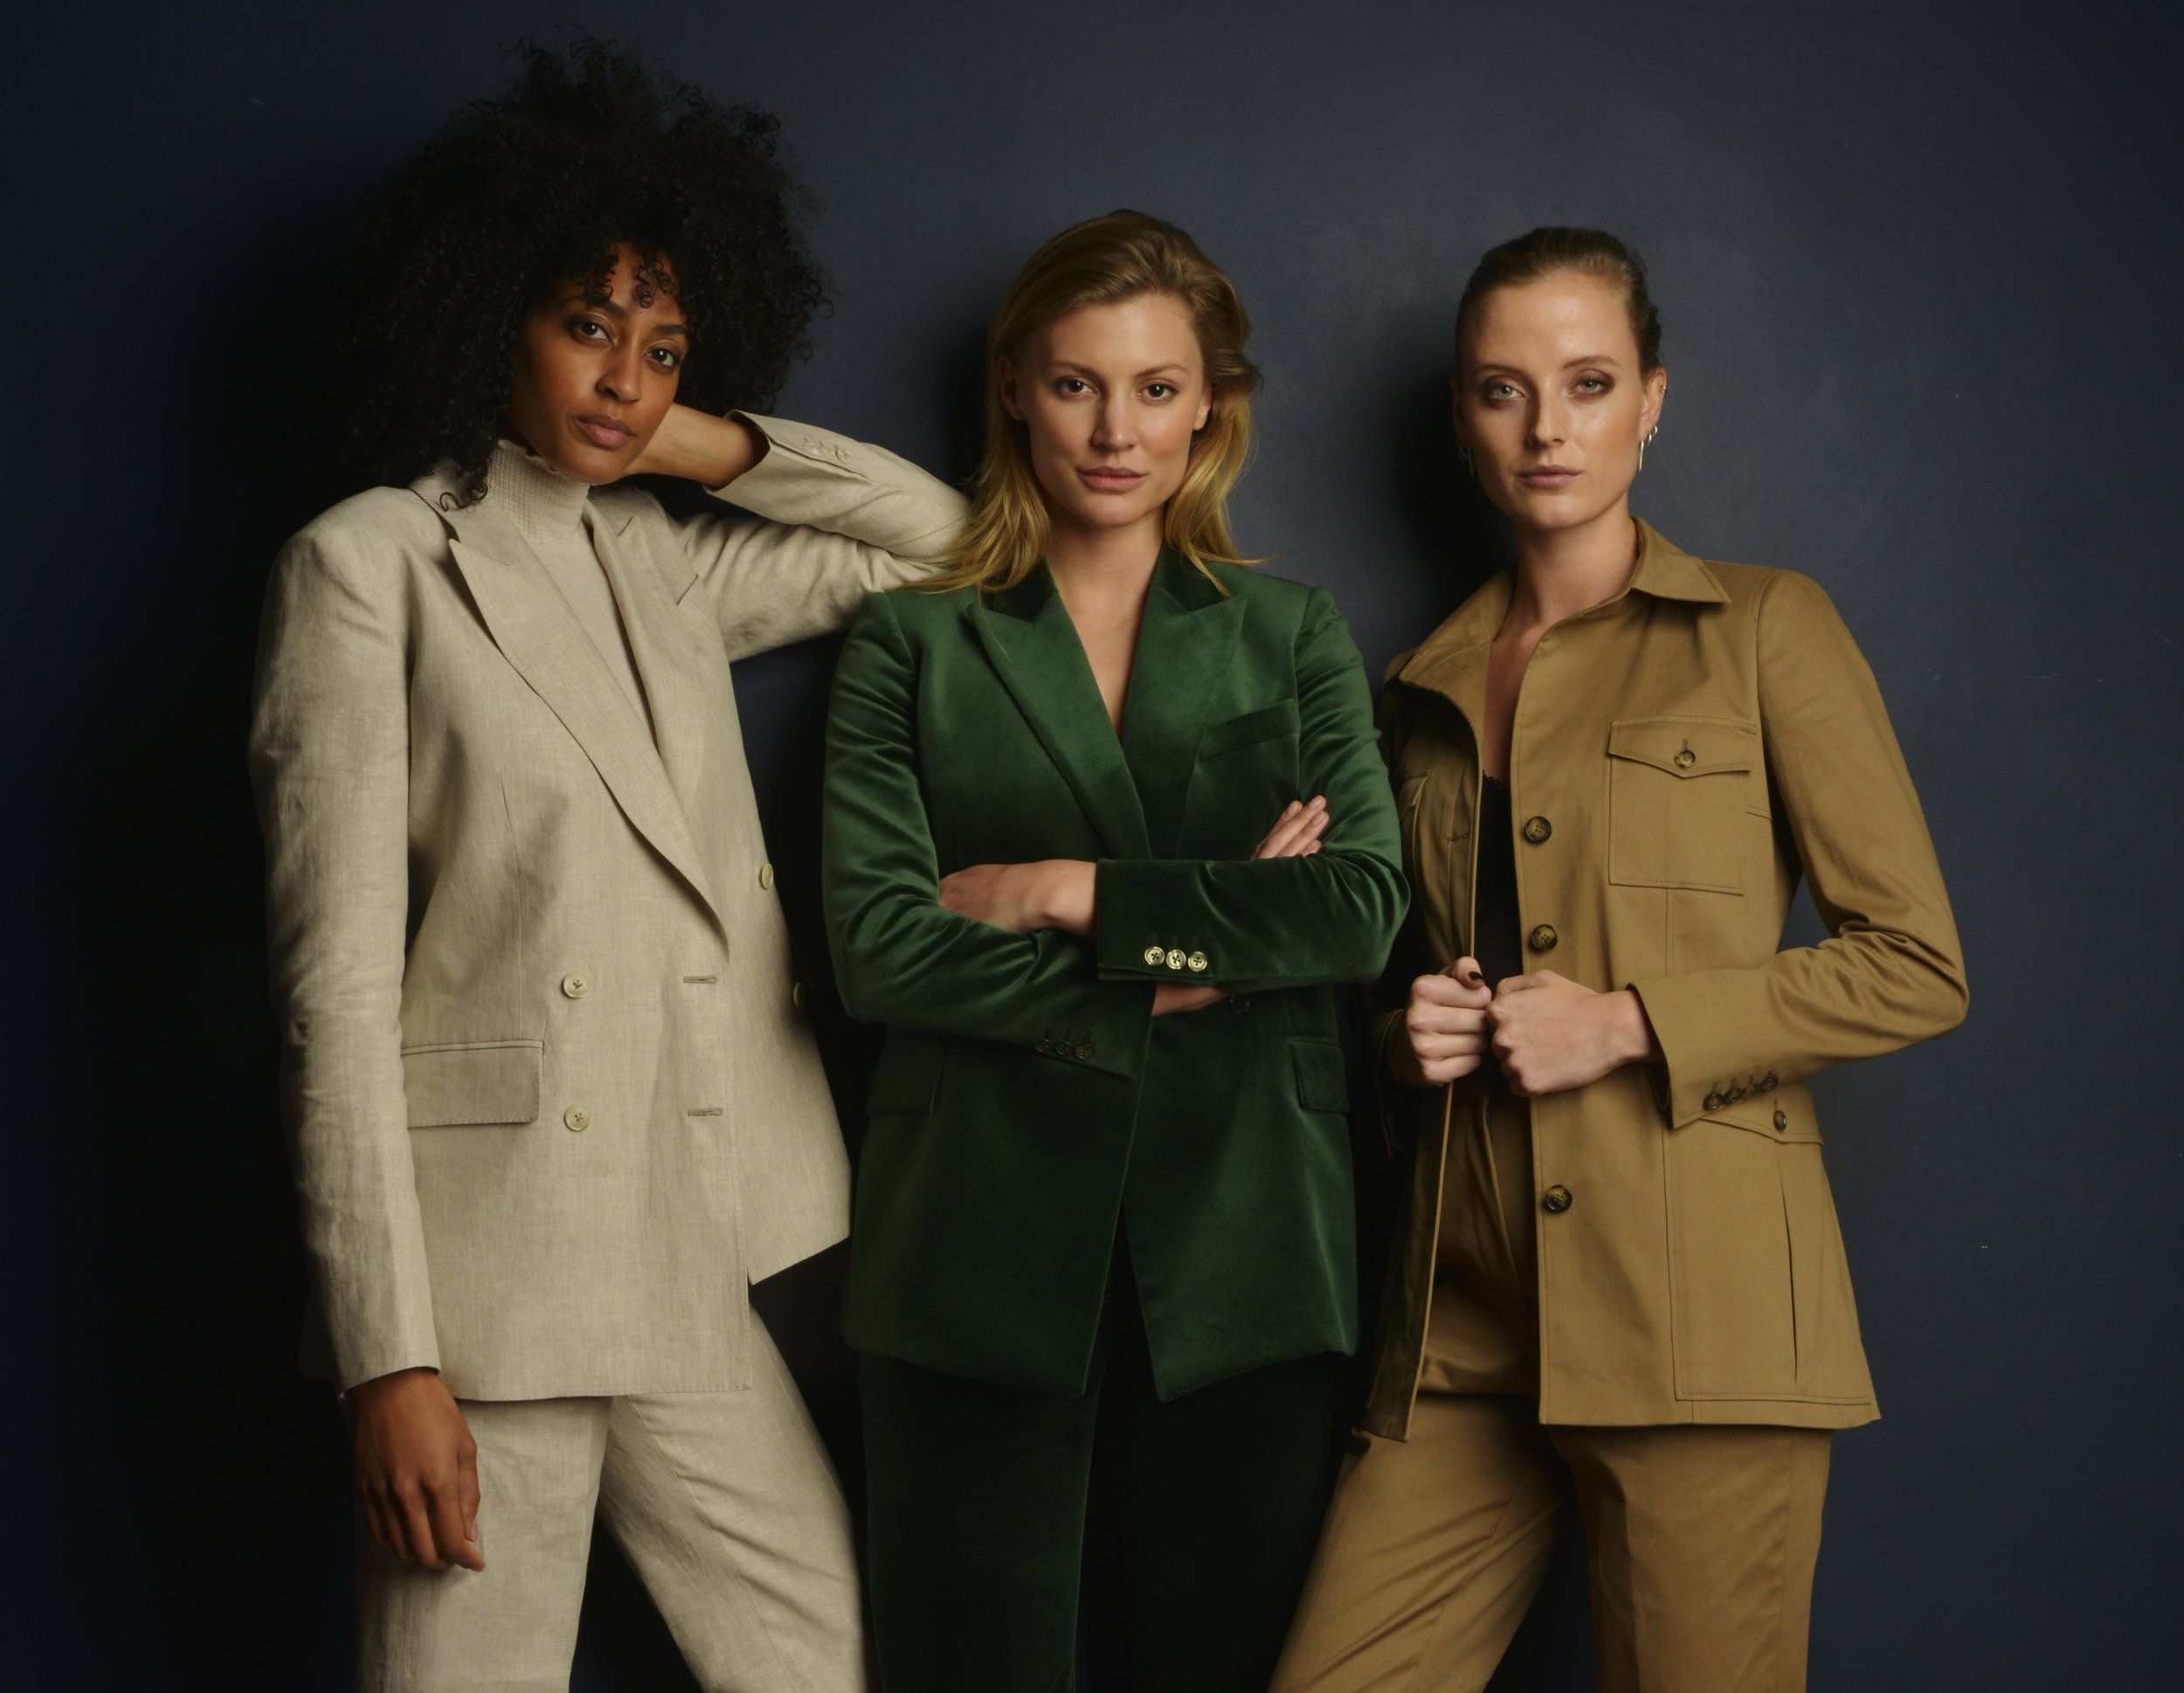 The Club in Oatmeal Linen, the Spade in Green Velvet and the Diamond in Camel Cotton